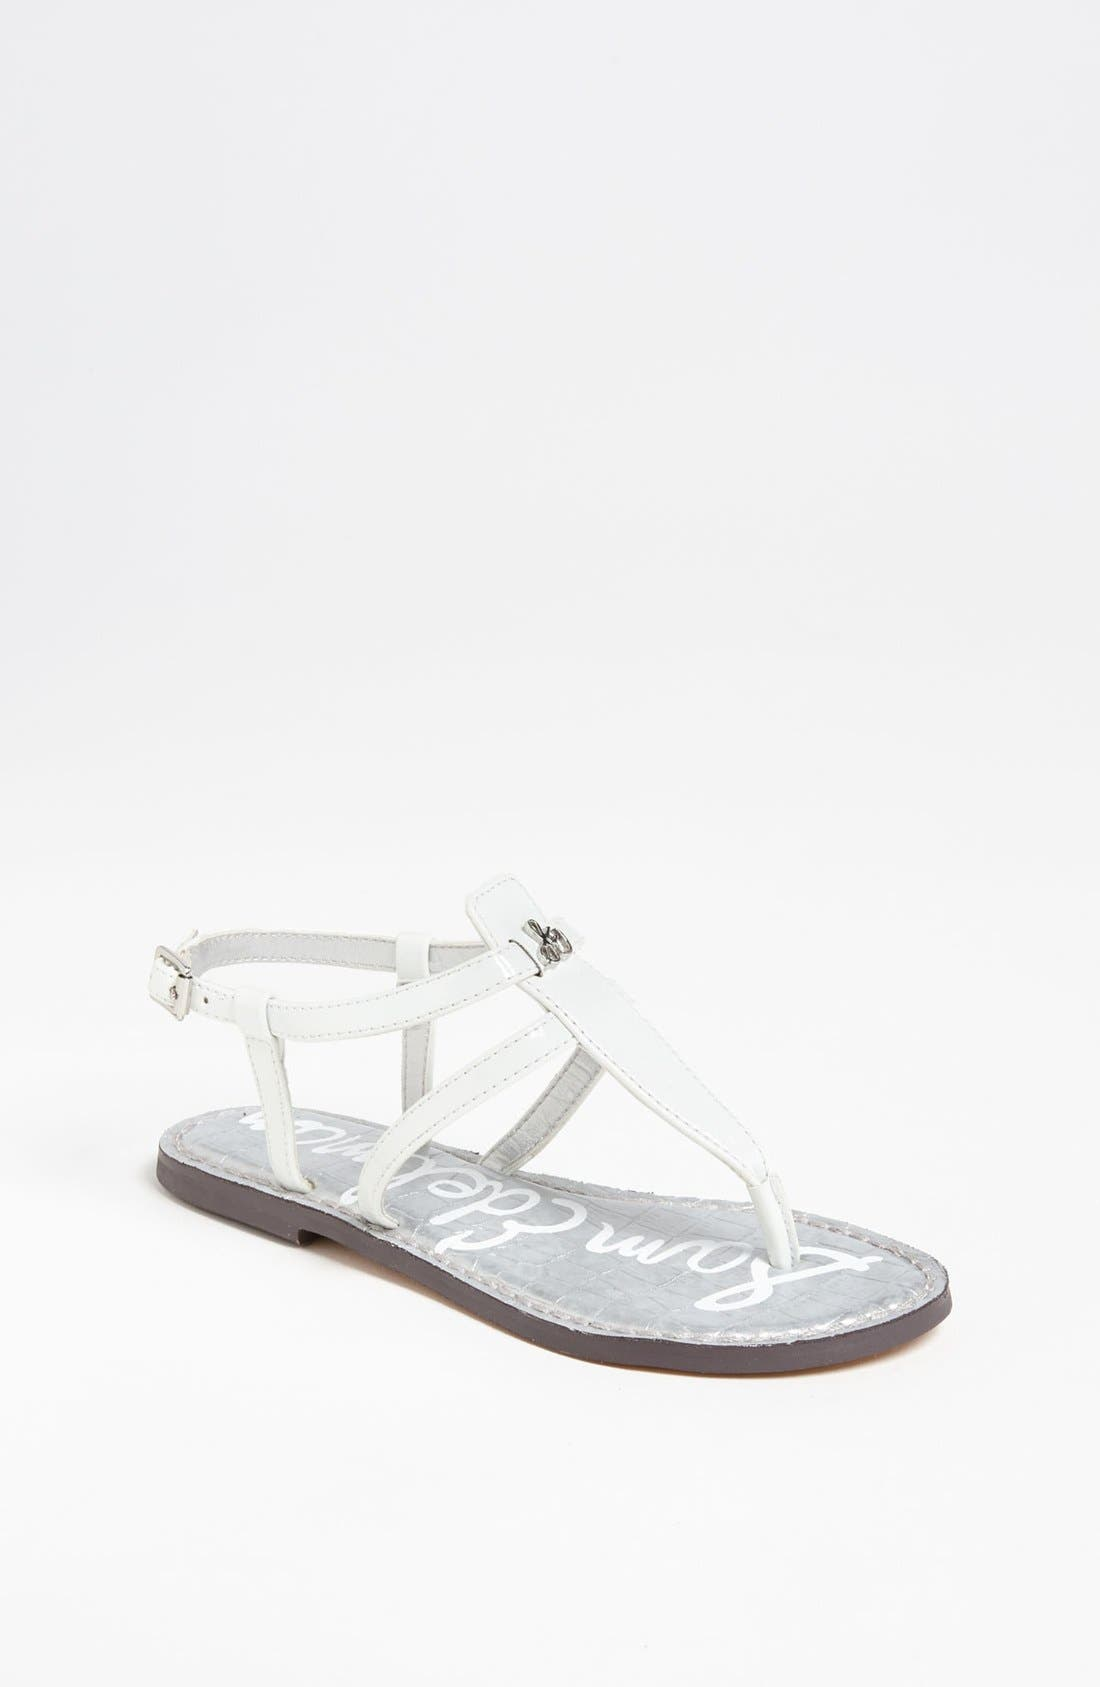 Alternate Image 1 Selected - Sam Edelman 'Gia' Sandal (Toddler, Little Kid & Big Kid)